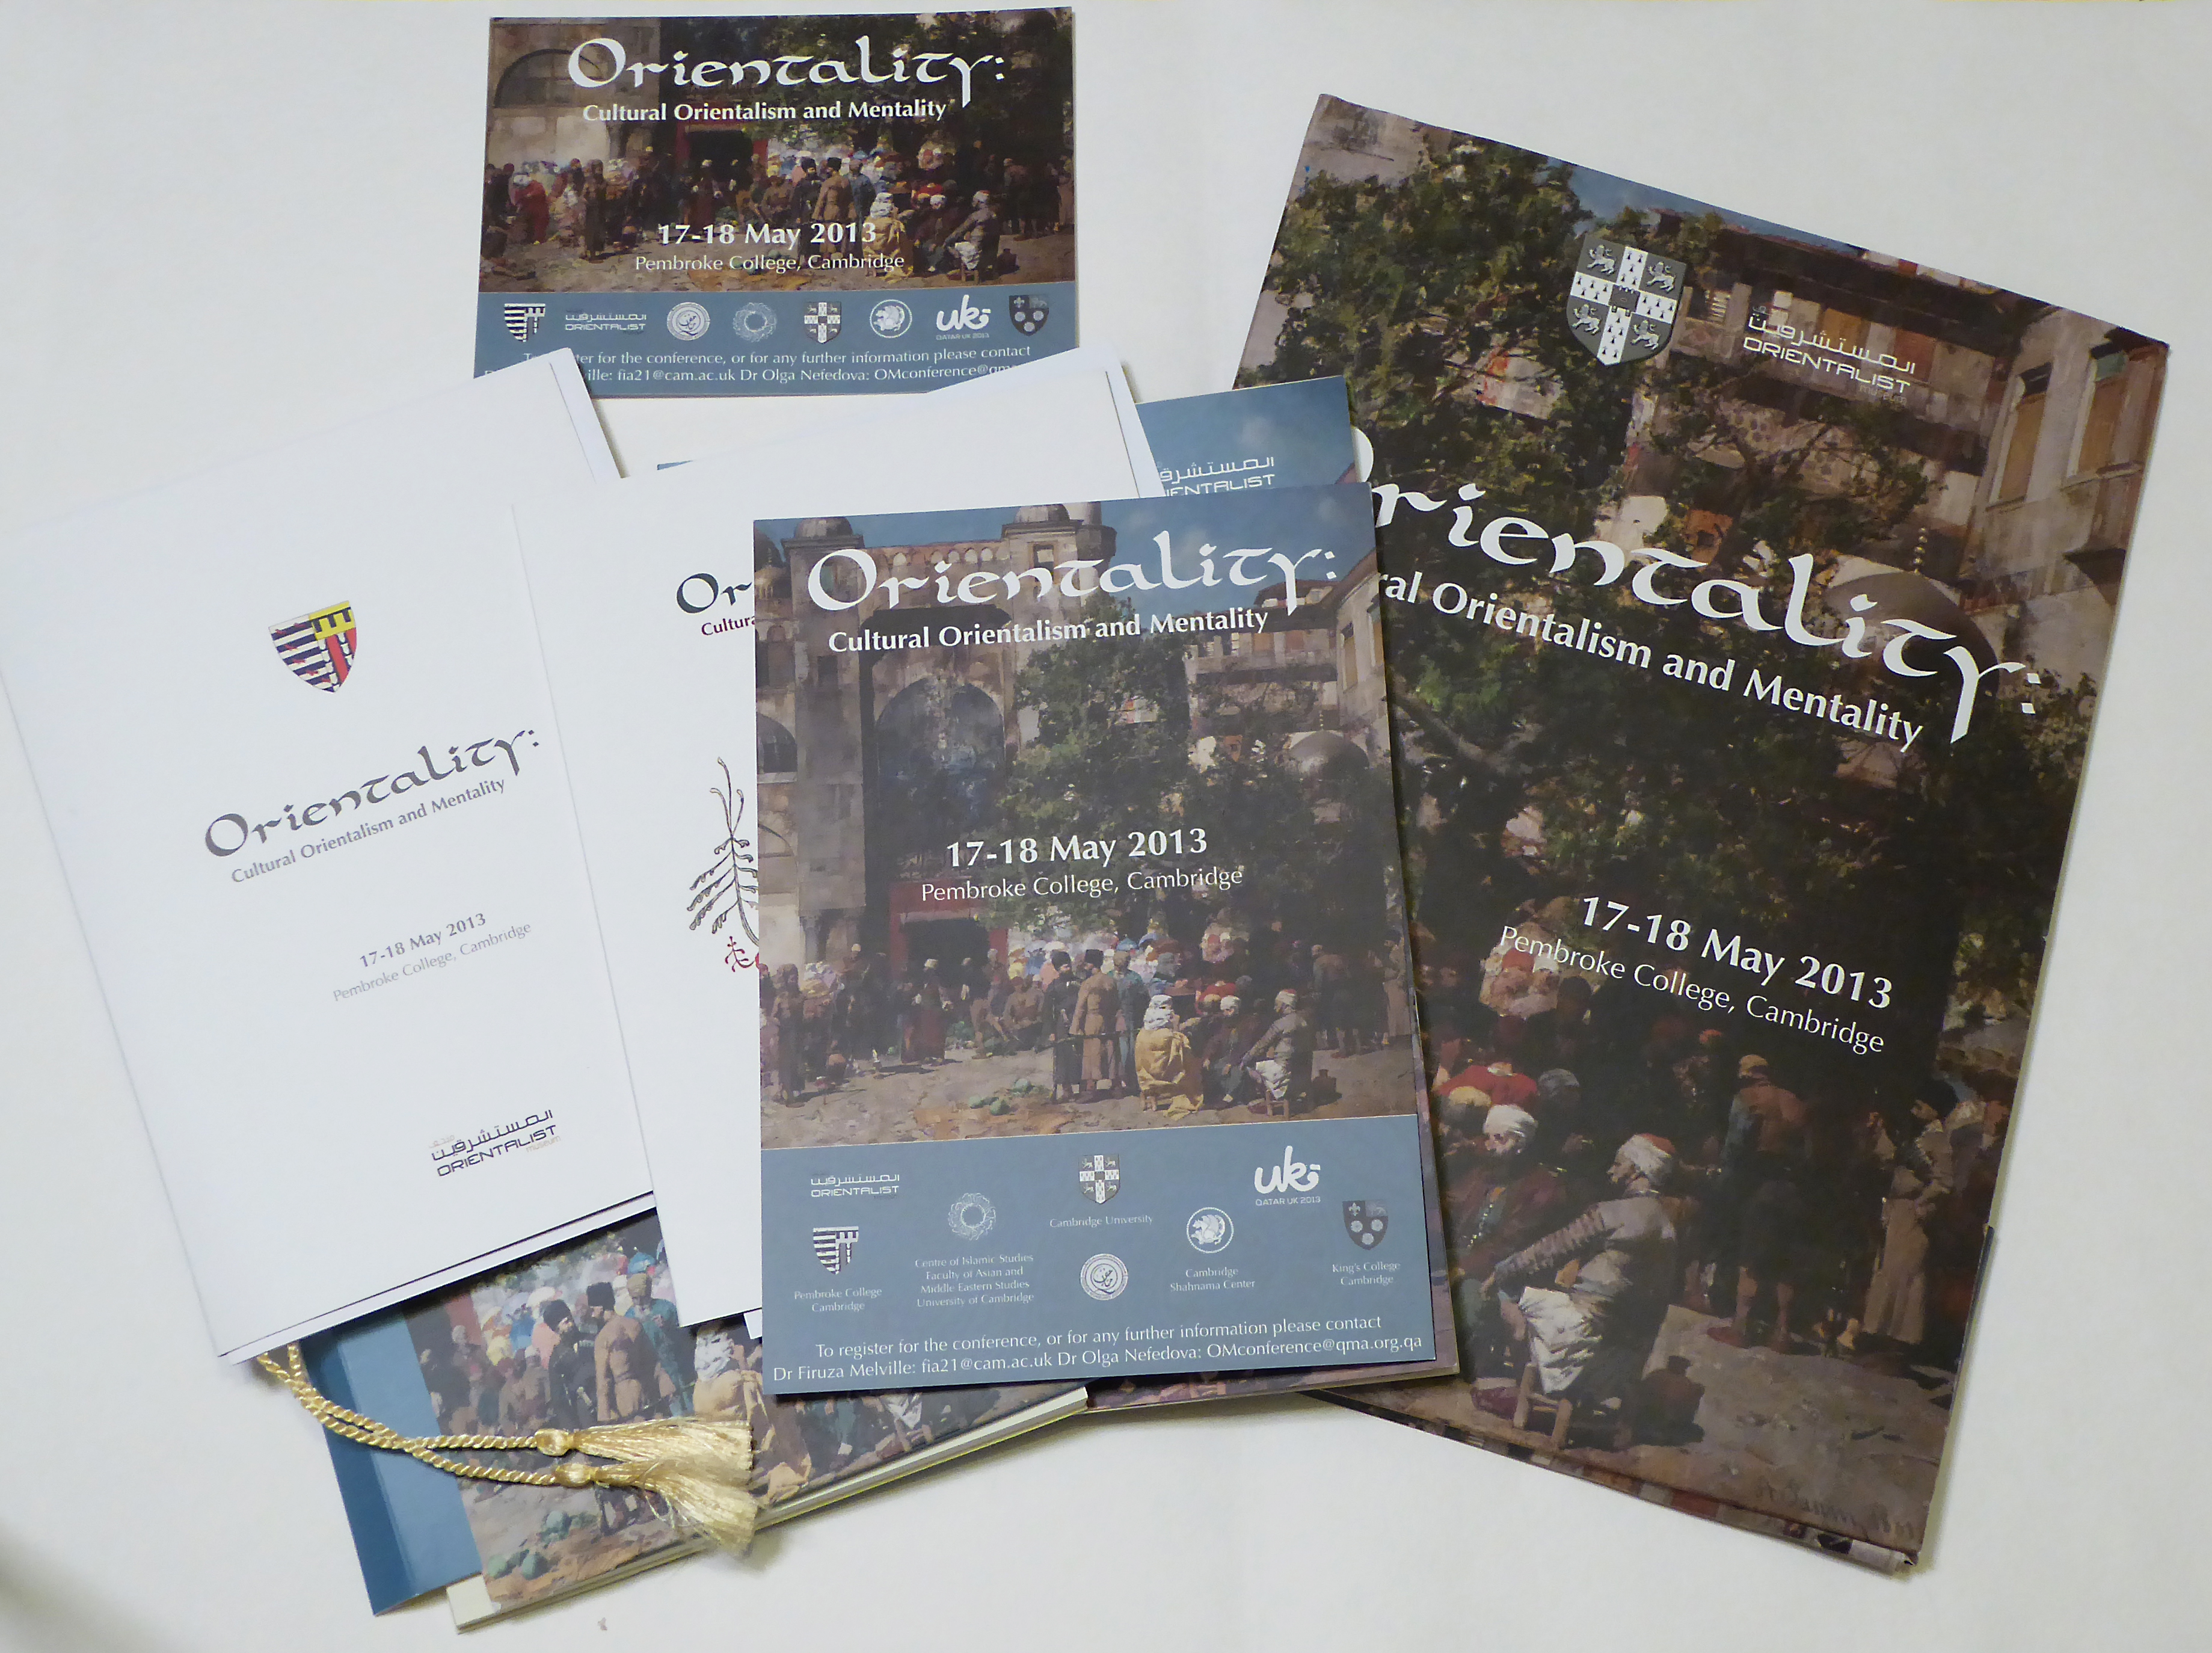 Orientality Conference